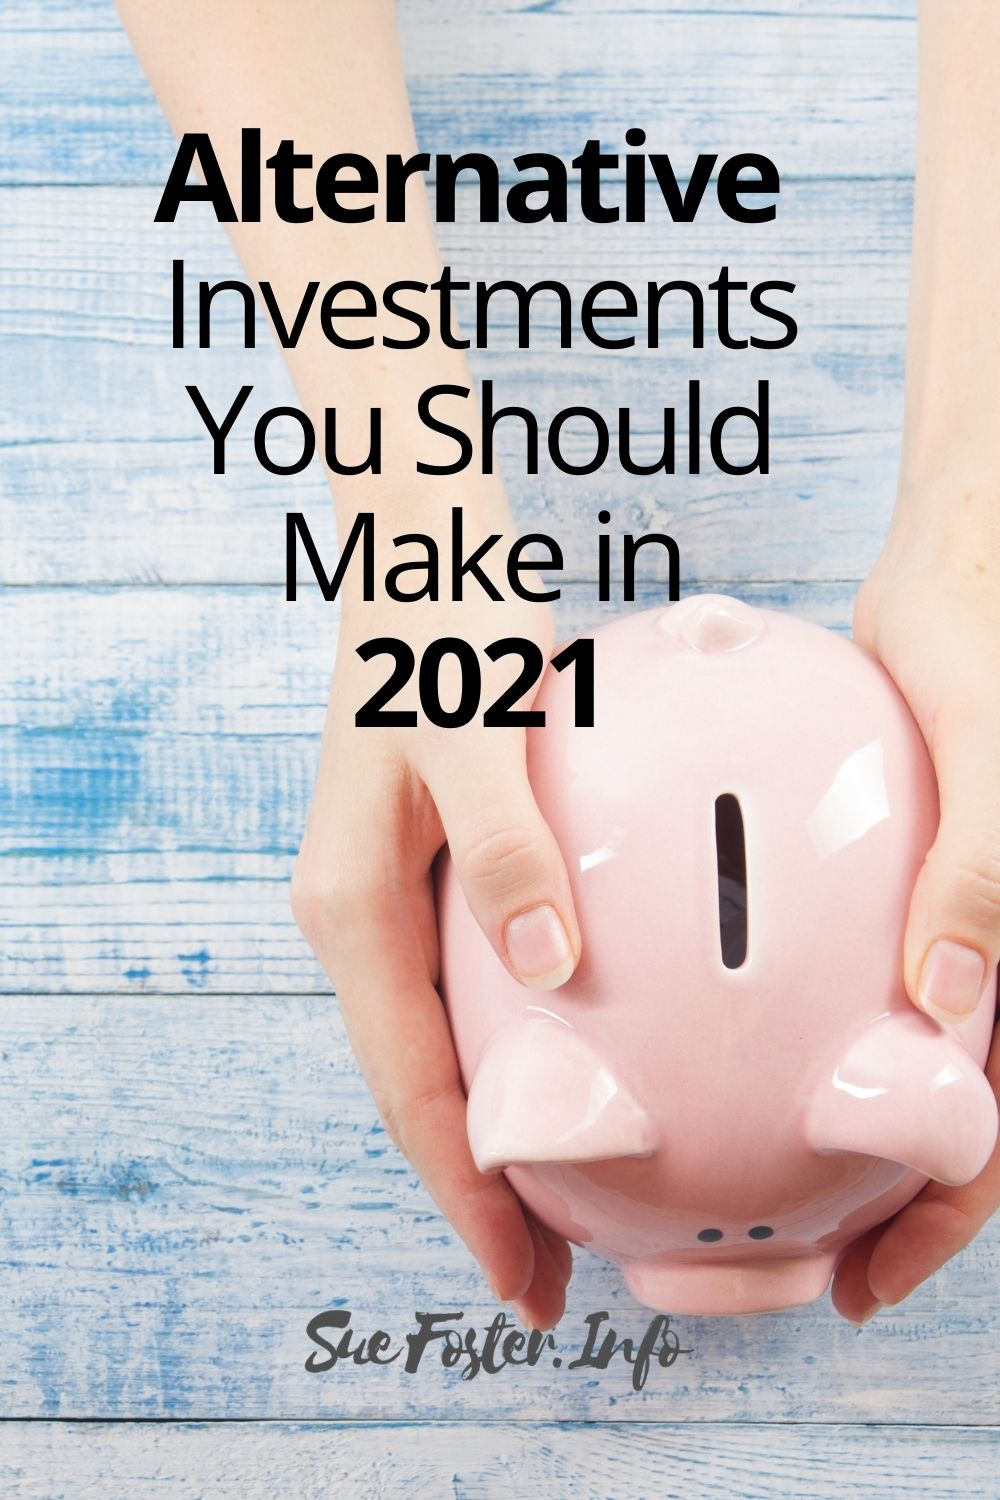 Alternative Investments You Should Make in 2021